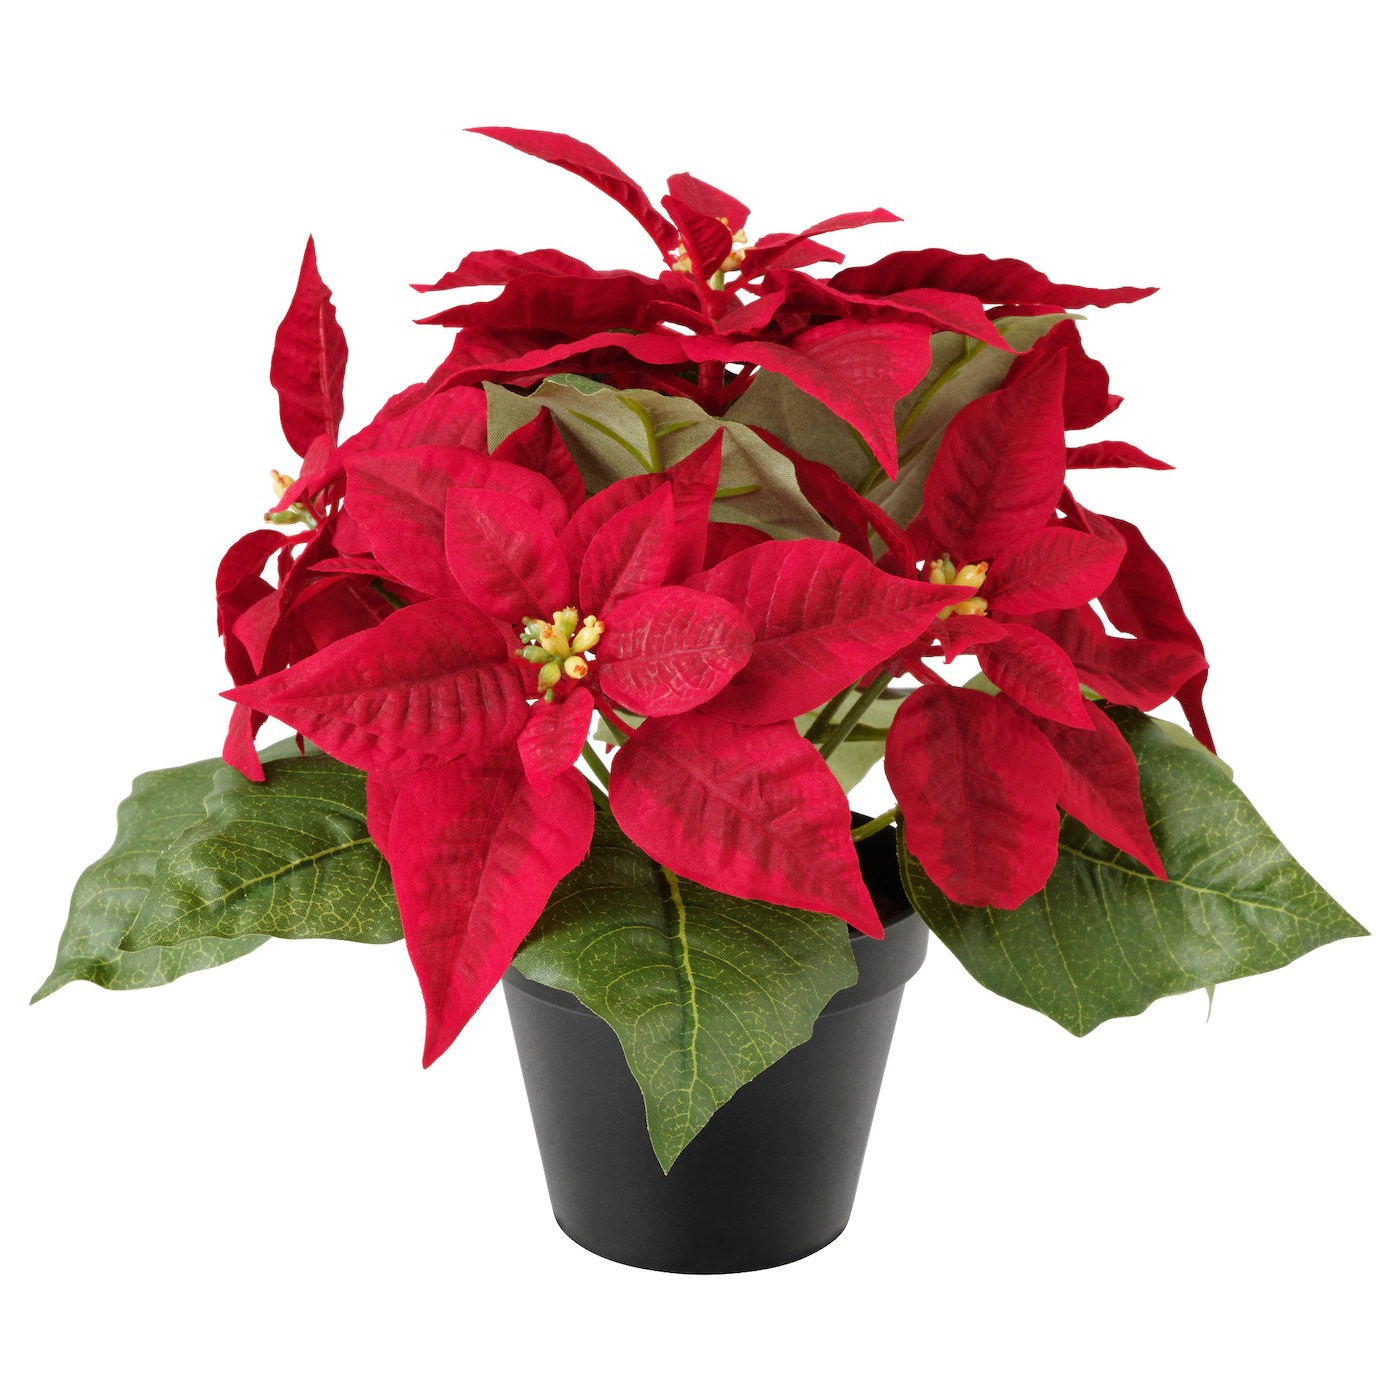 https://i2.wp.com/www.ikea.com/gb/en/images/products/fejka-artificial-potted-plant-poinsettia-red__0538278_pe651824_s5.jpg